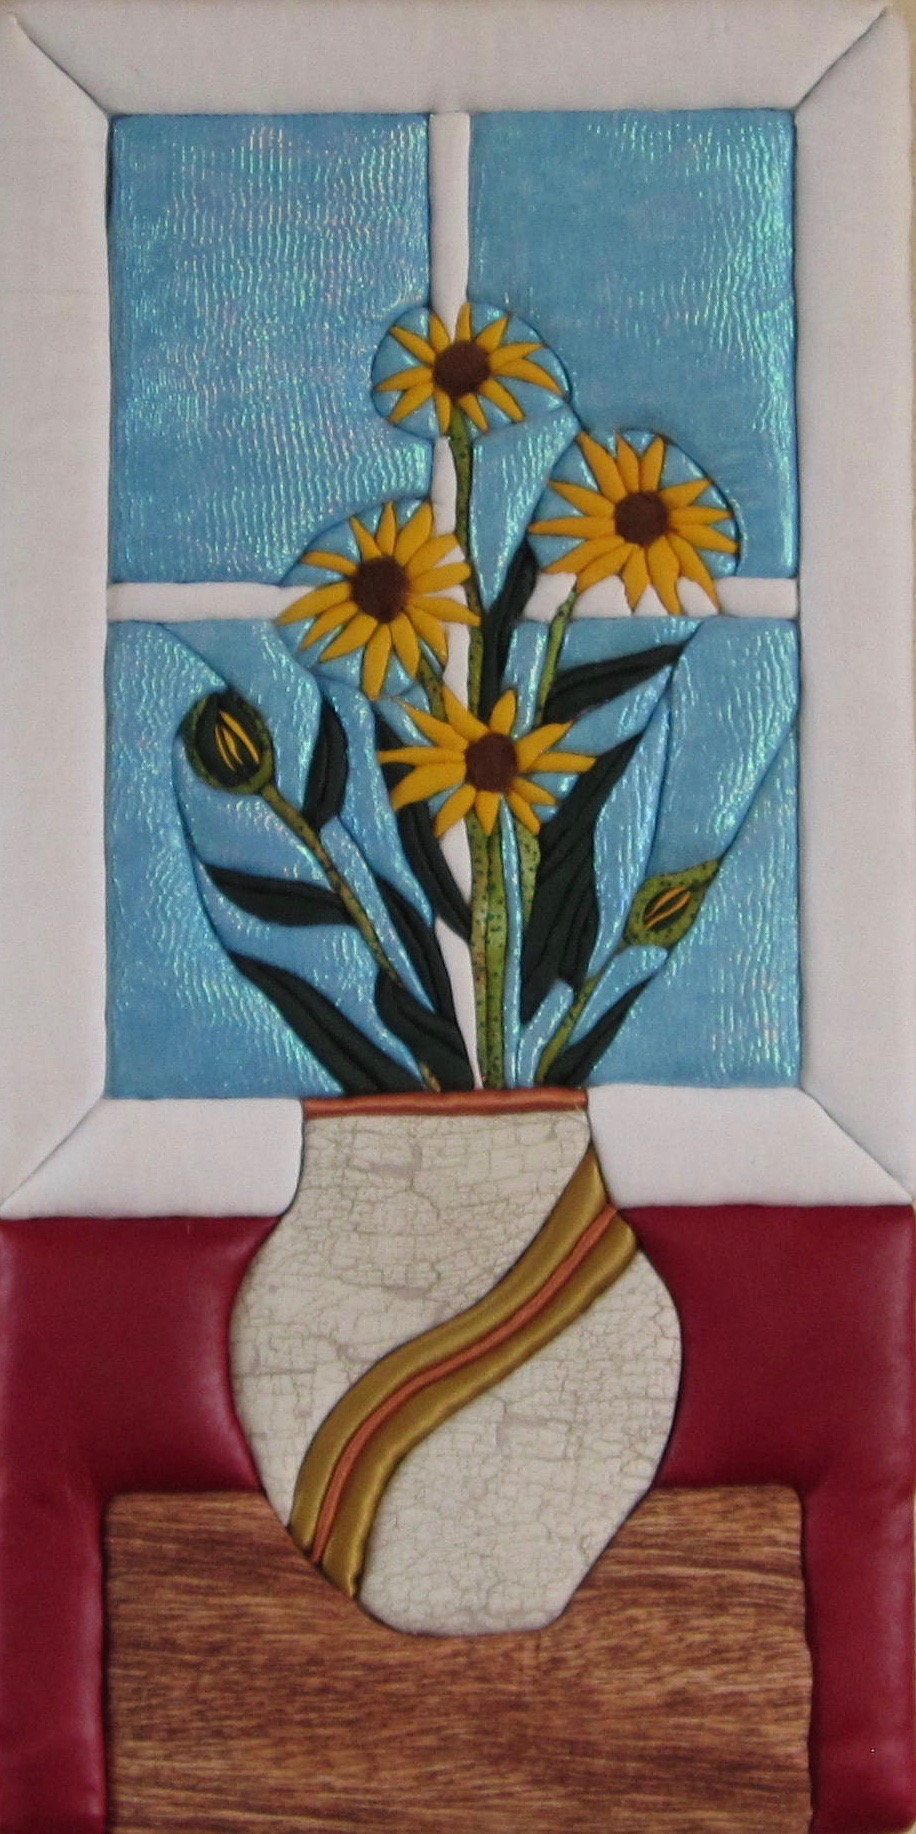 E. Cristina Diaz-Arntzen: Looking at You: Daisies